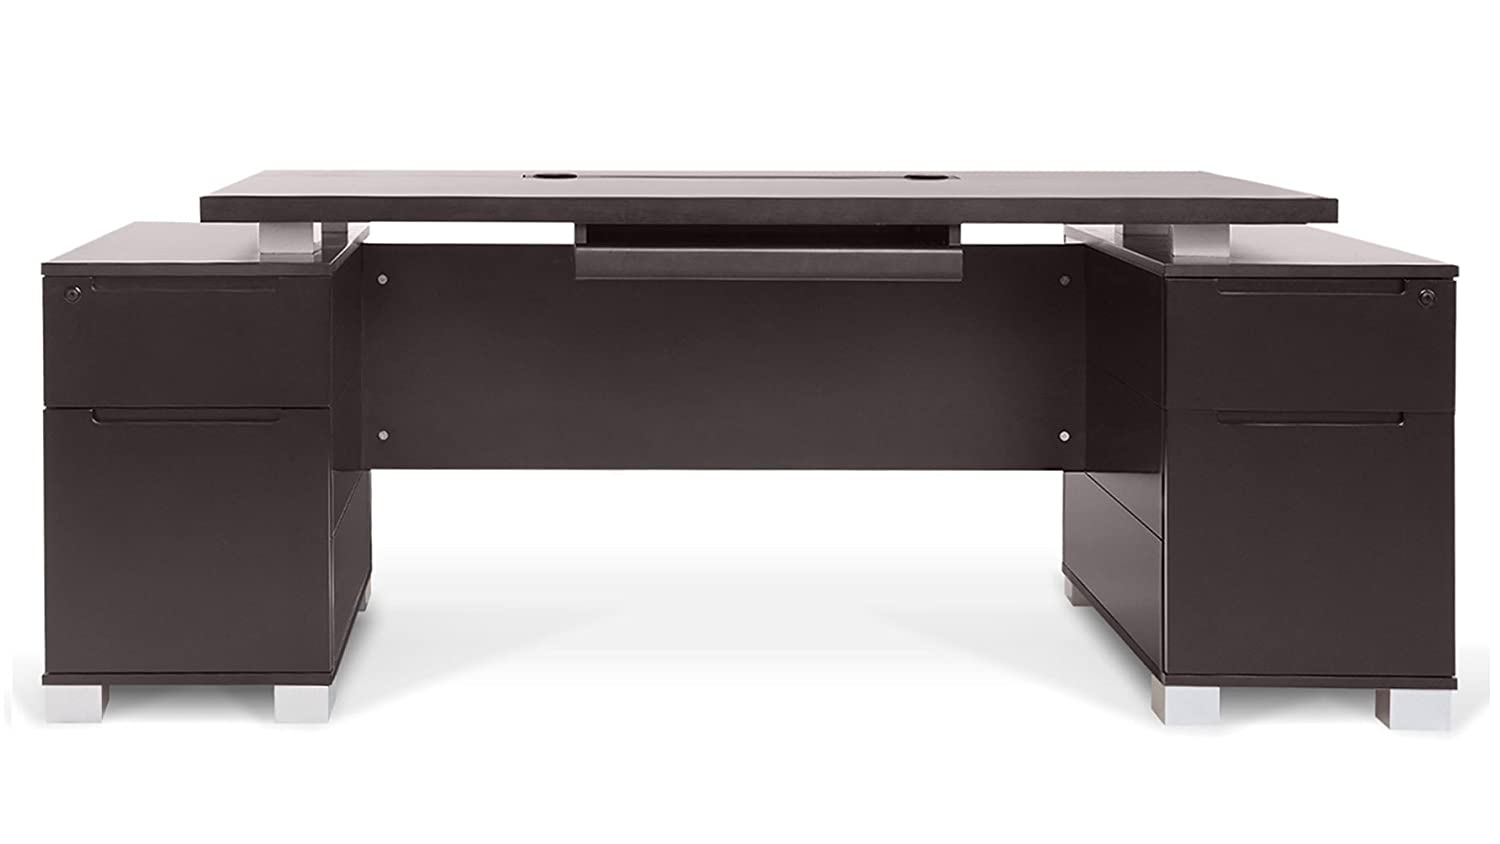 office tables on wheels. Office Table. Amazon.com: Ford Executive Modern Desk With Filing Cabinets - Dark Tables On Wheels H